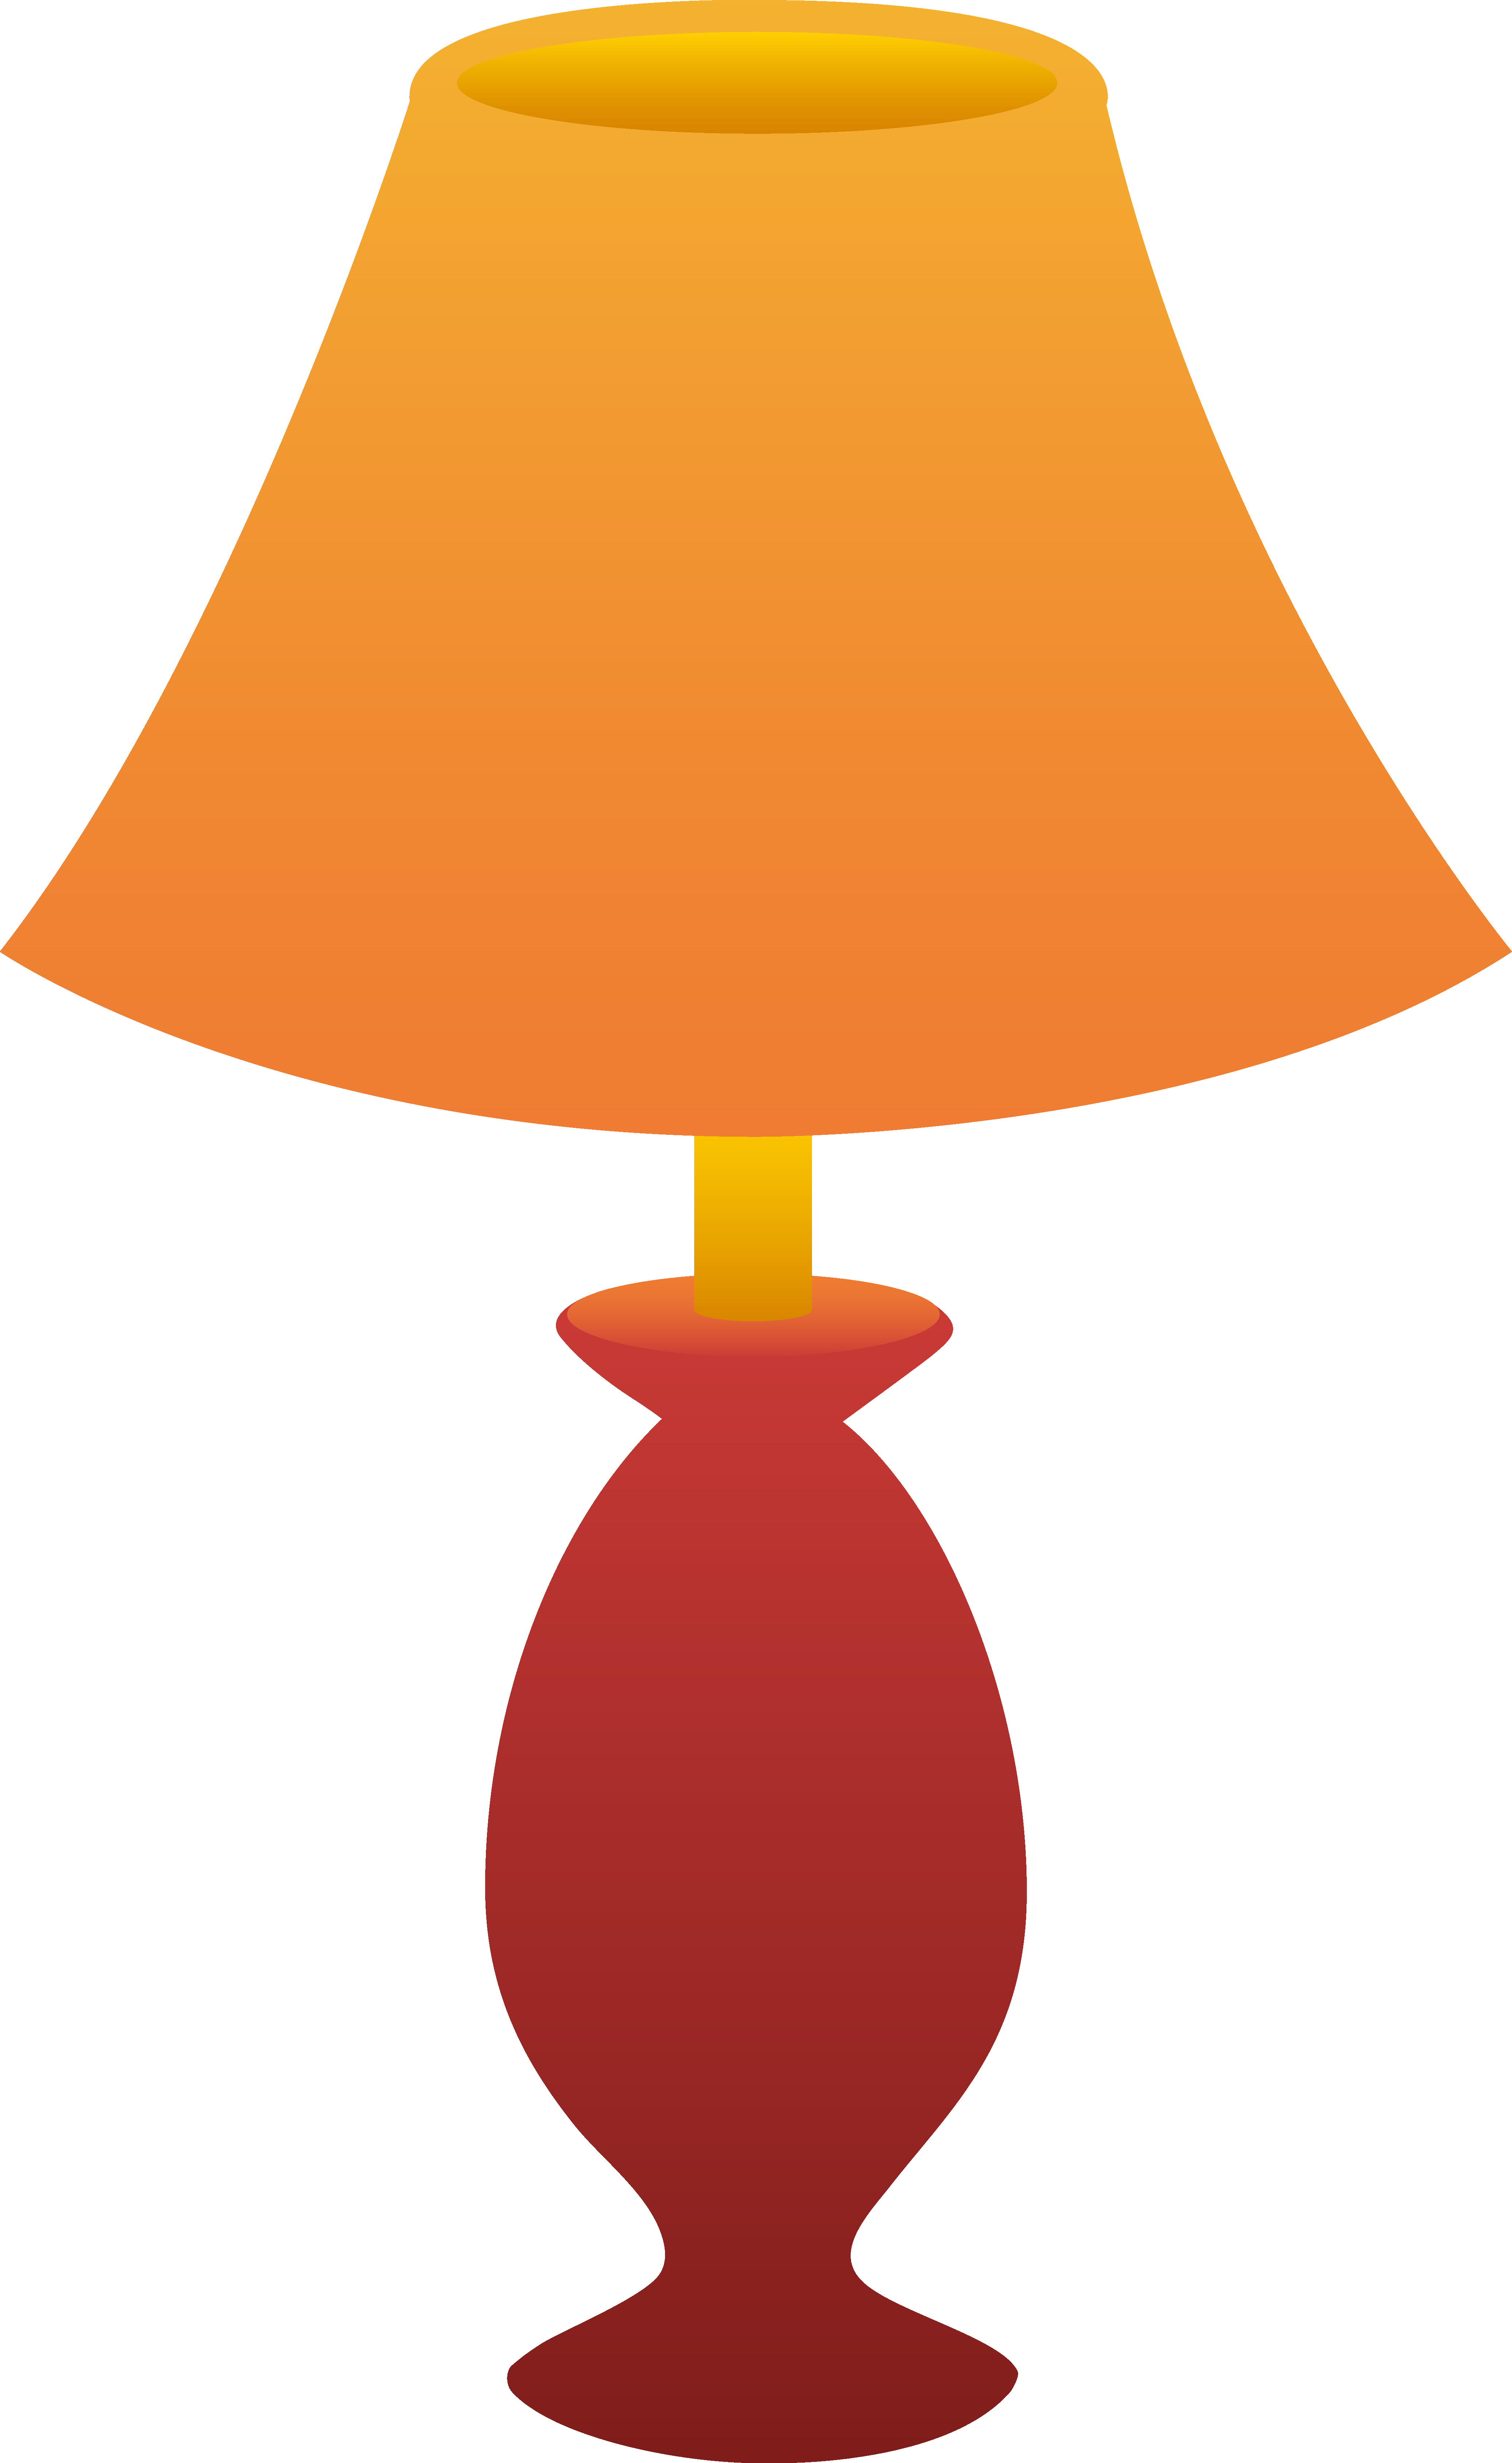 Lamp clipart lampara. At getdrawings com free